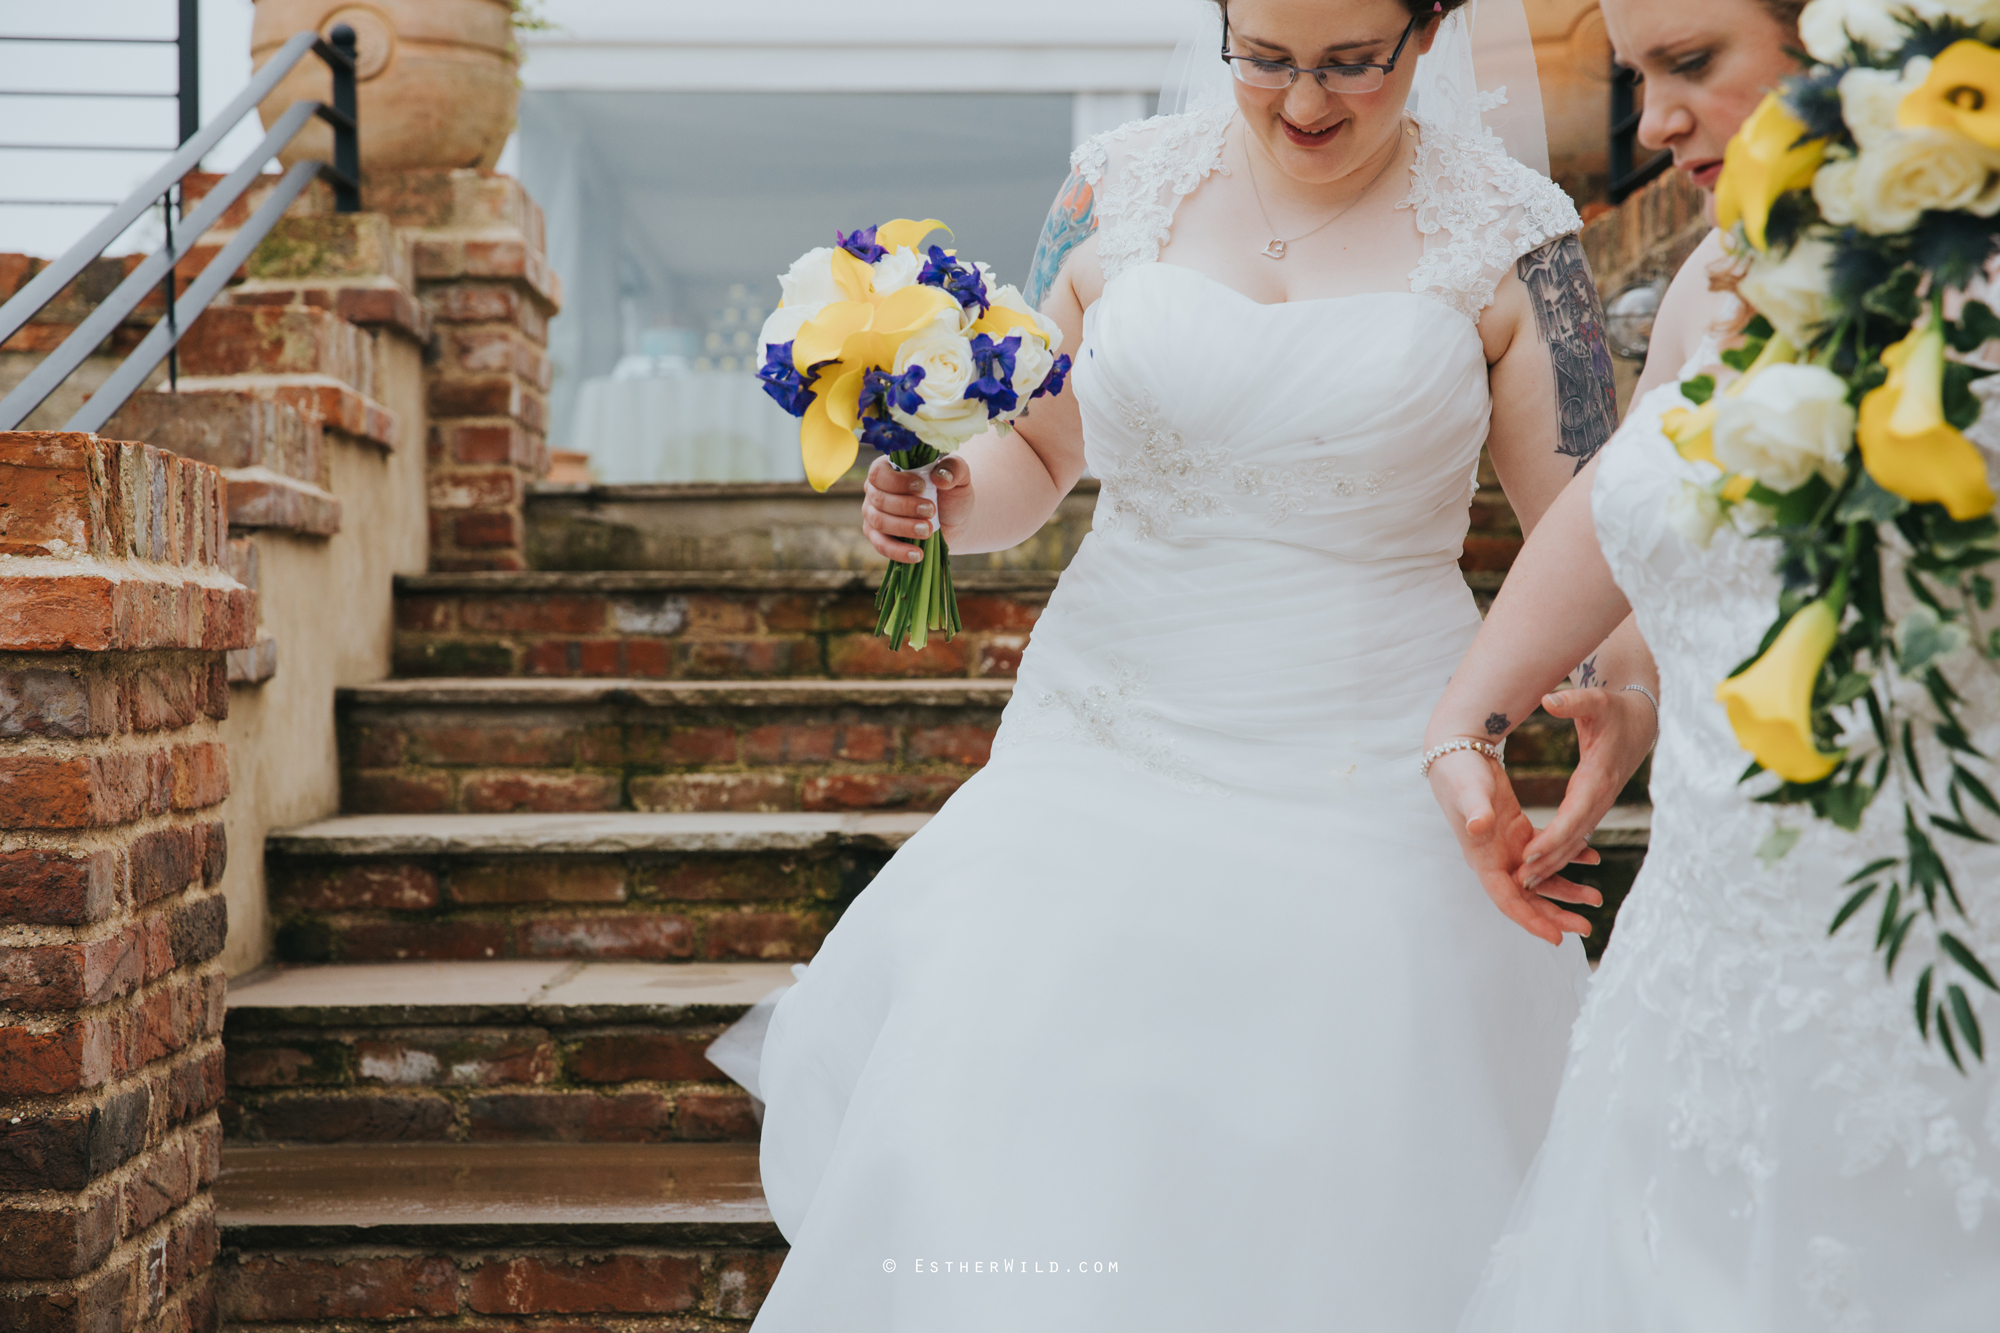 Old_Hall_Ely_Wedding_Esther_Wild_Photographer_IMG_1314.jpg